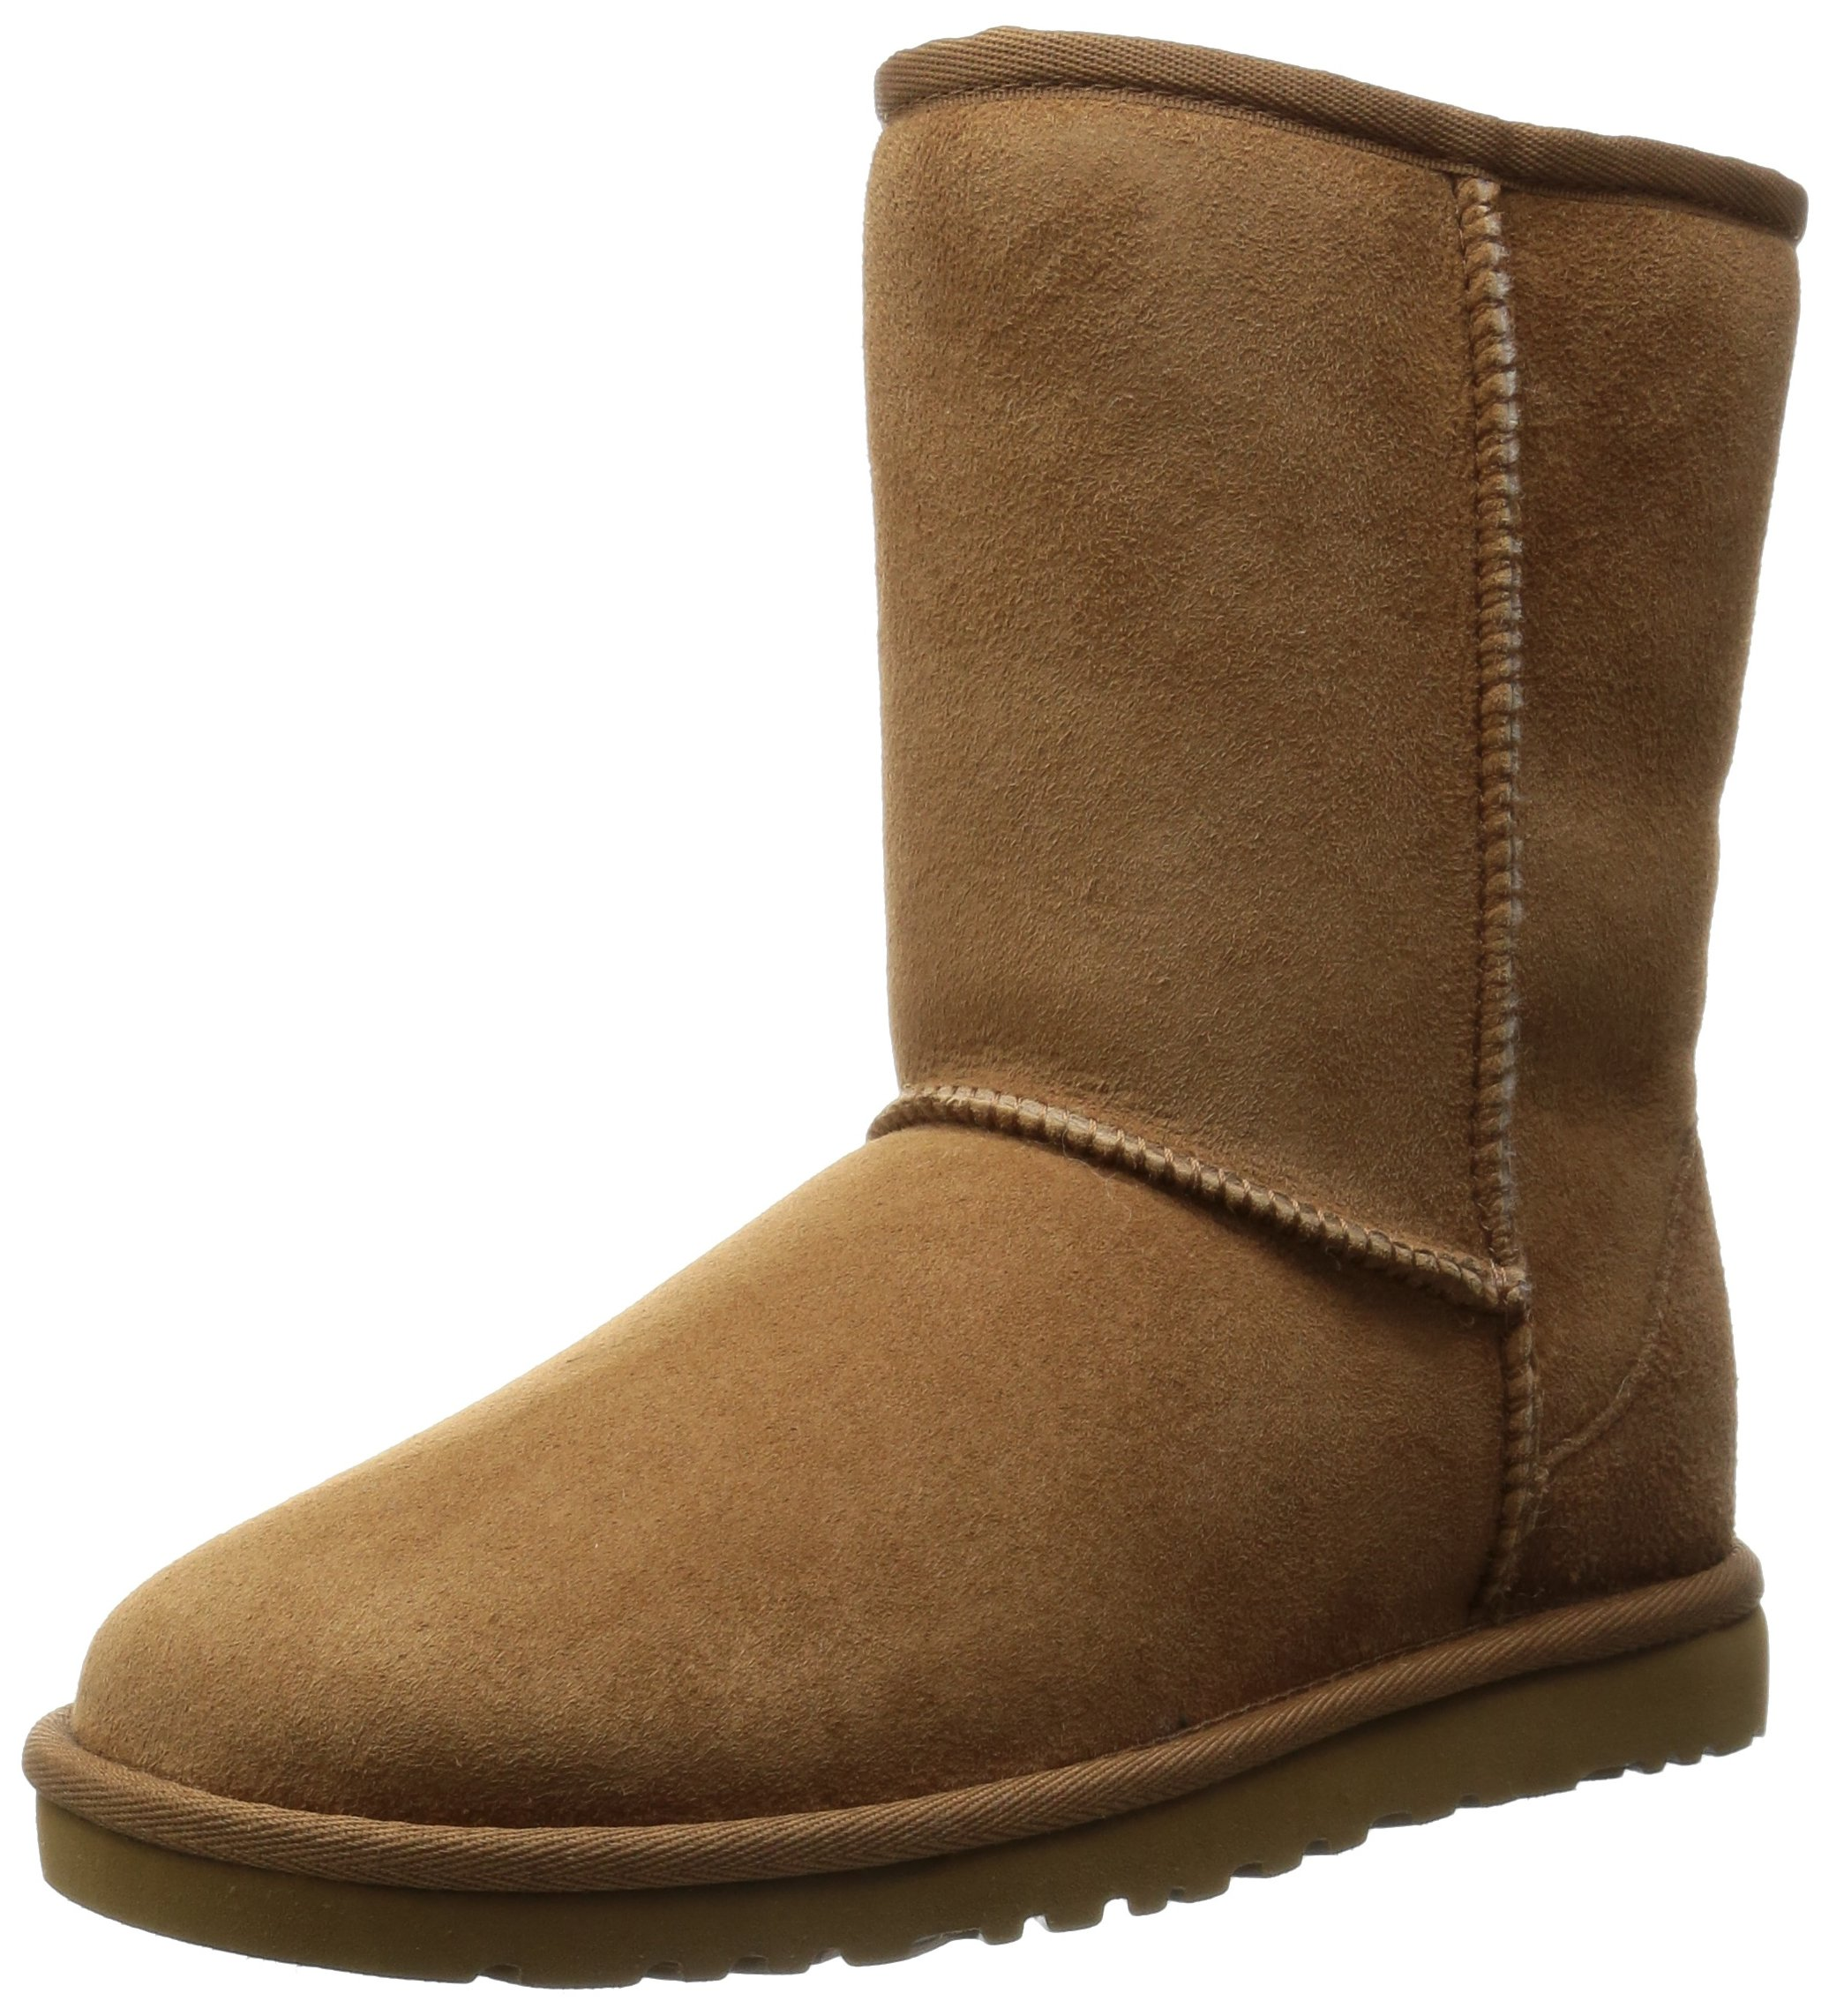 UGG Men's Classic Short Sheepskin Boots, Chestnut, 10 D(M) US